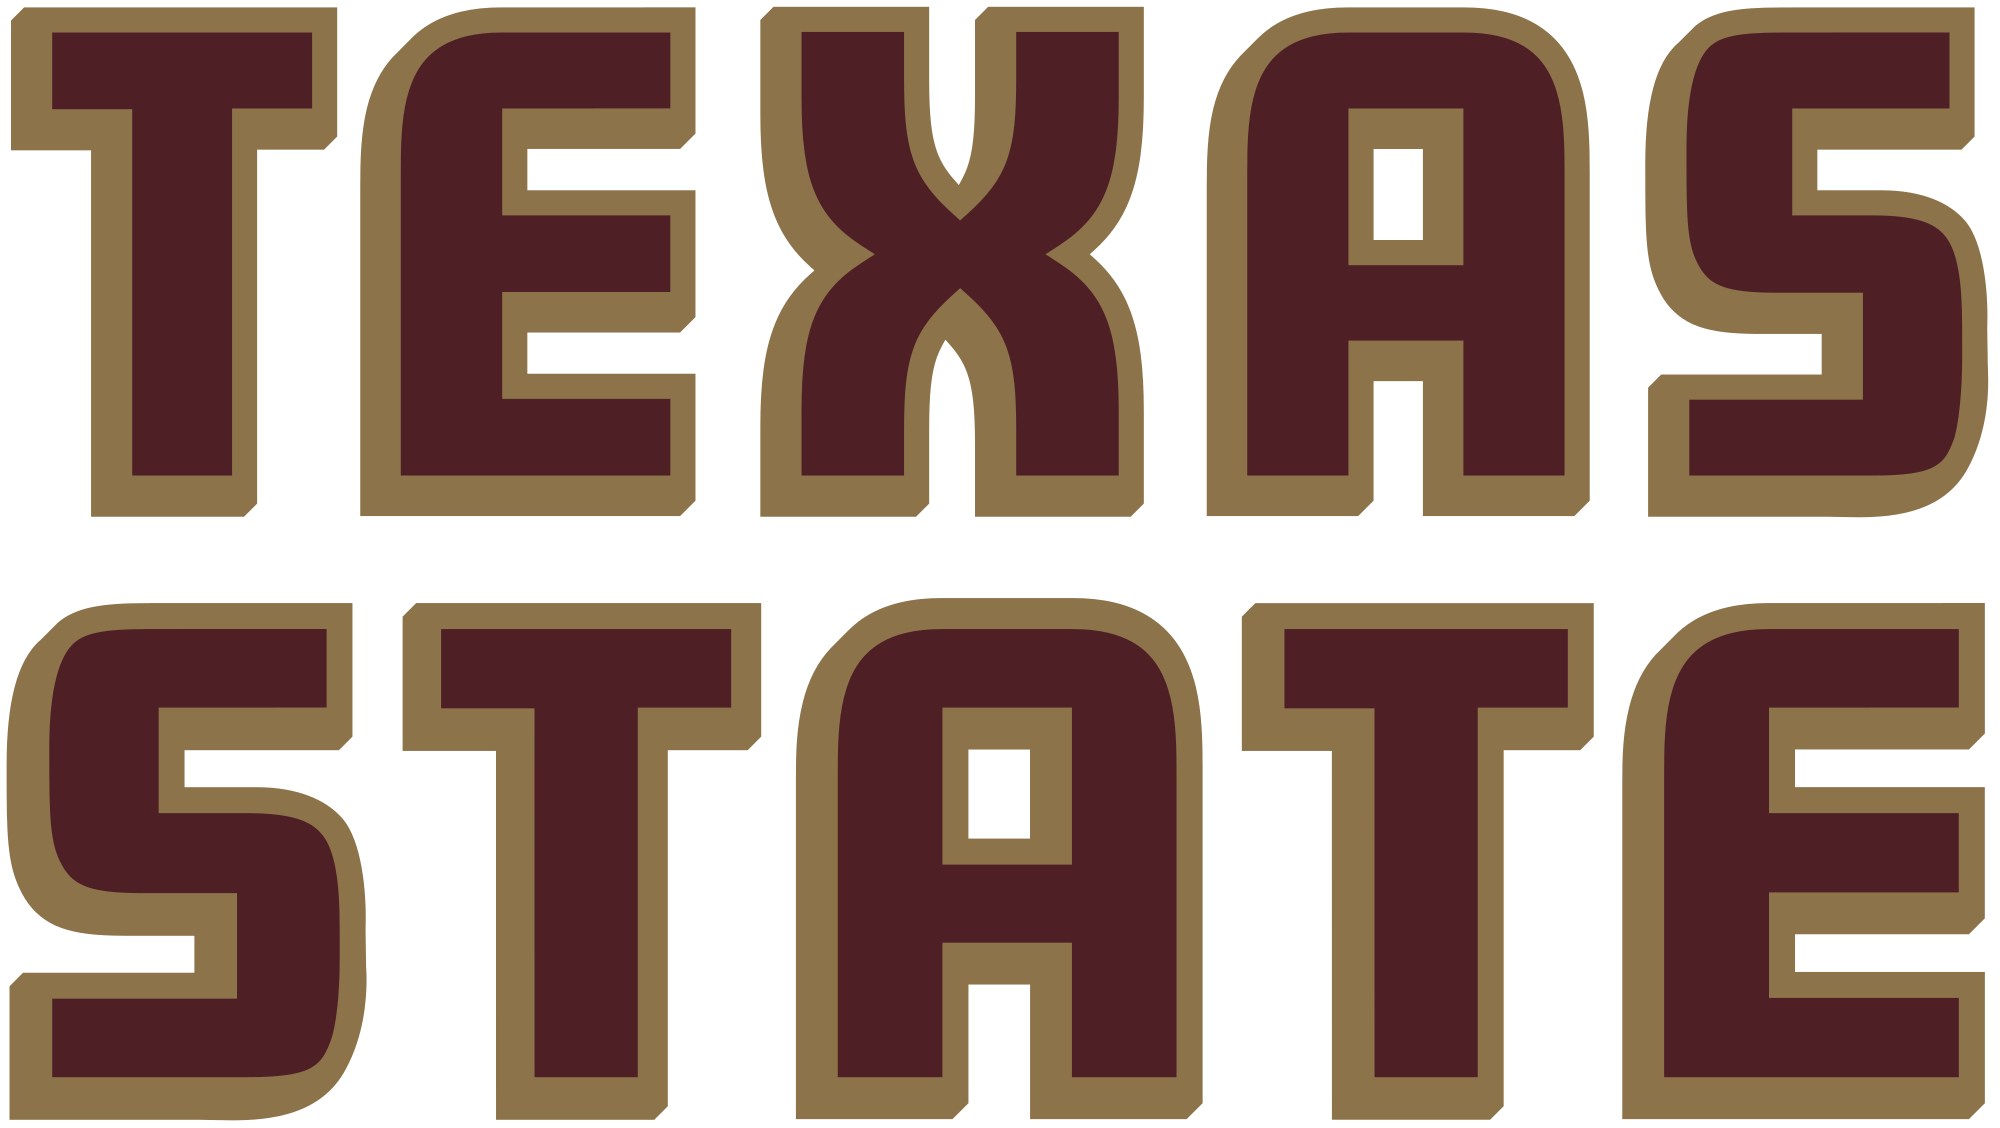 Texas state logo png. File athletics wordmark svg